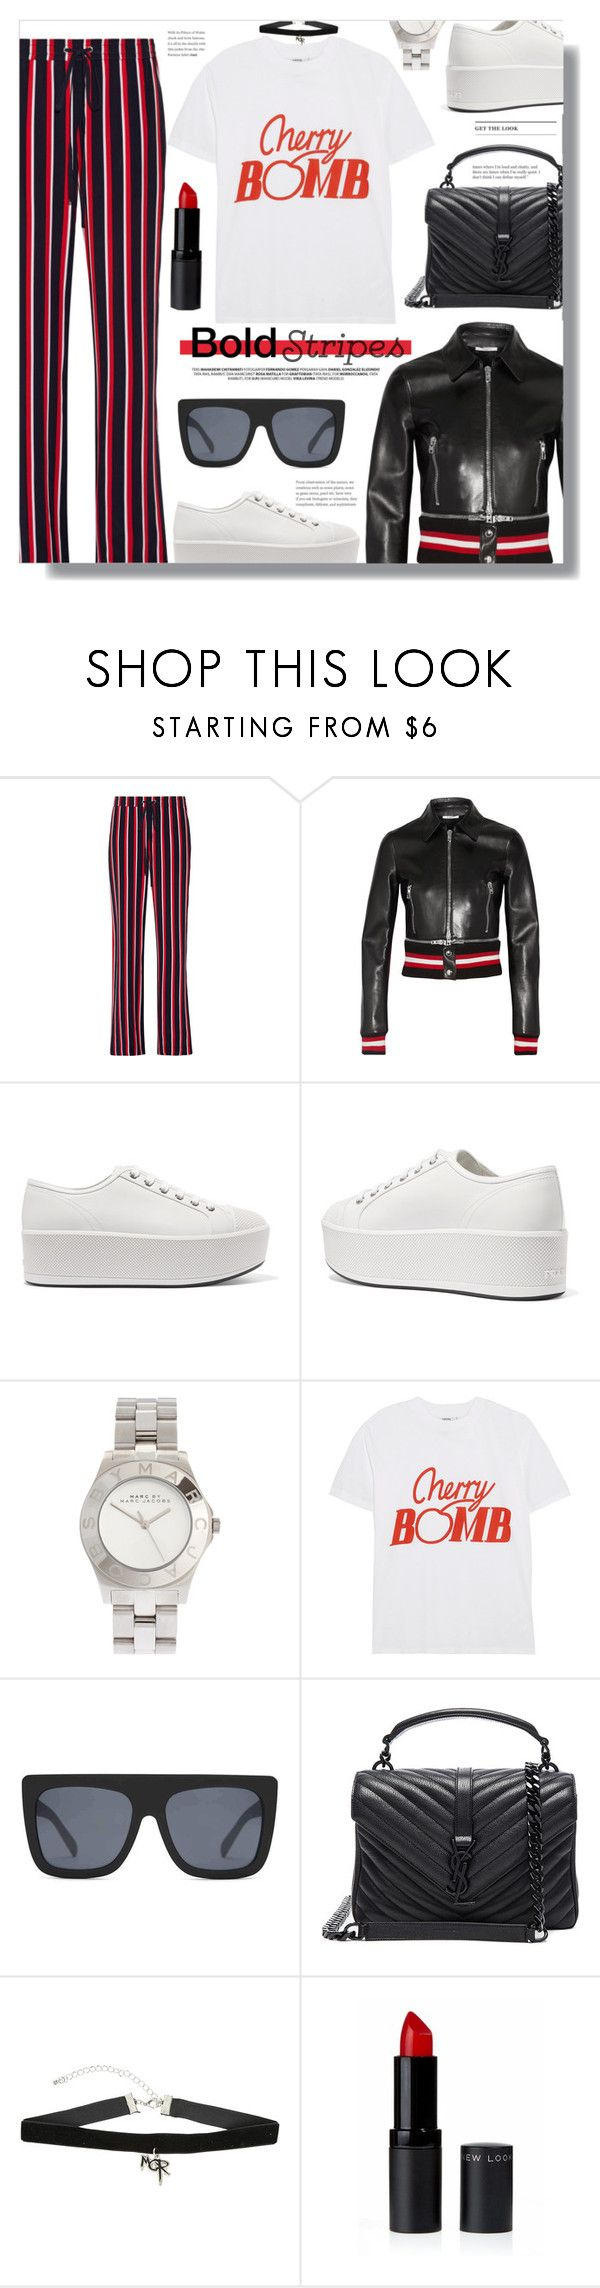 """""""BOLD Stripes"""" by chocolate-addicted-angel ❤ liked on Polyvore featuring Markus Lupfer, Givenchy, Prada, Marc by Marc Jacobs, Ganni, Quay, Yves Saint Laurent and Hot Topic"""